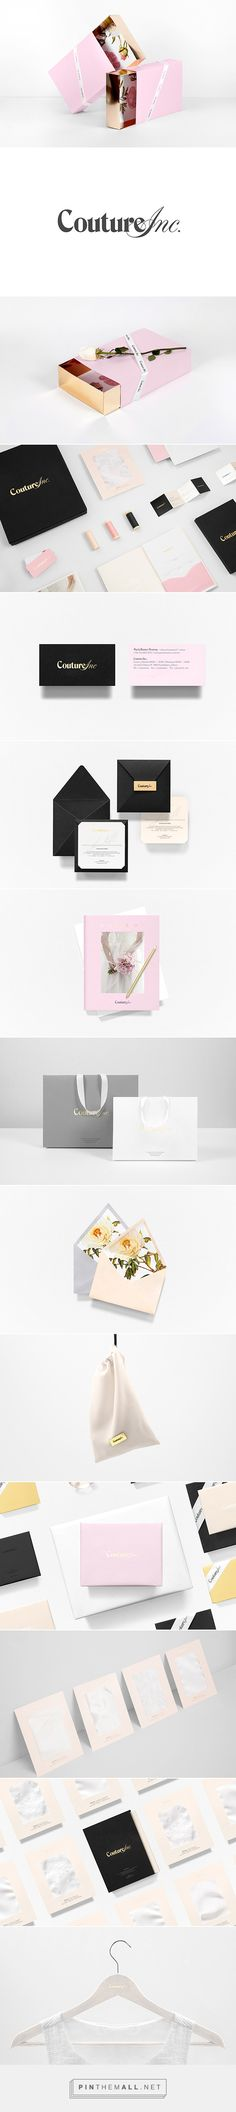 Couture Inc. on Behance by Anagrama curated by Packaging Diva PD. Branding work…